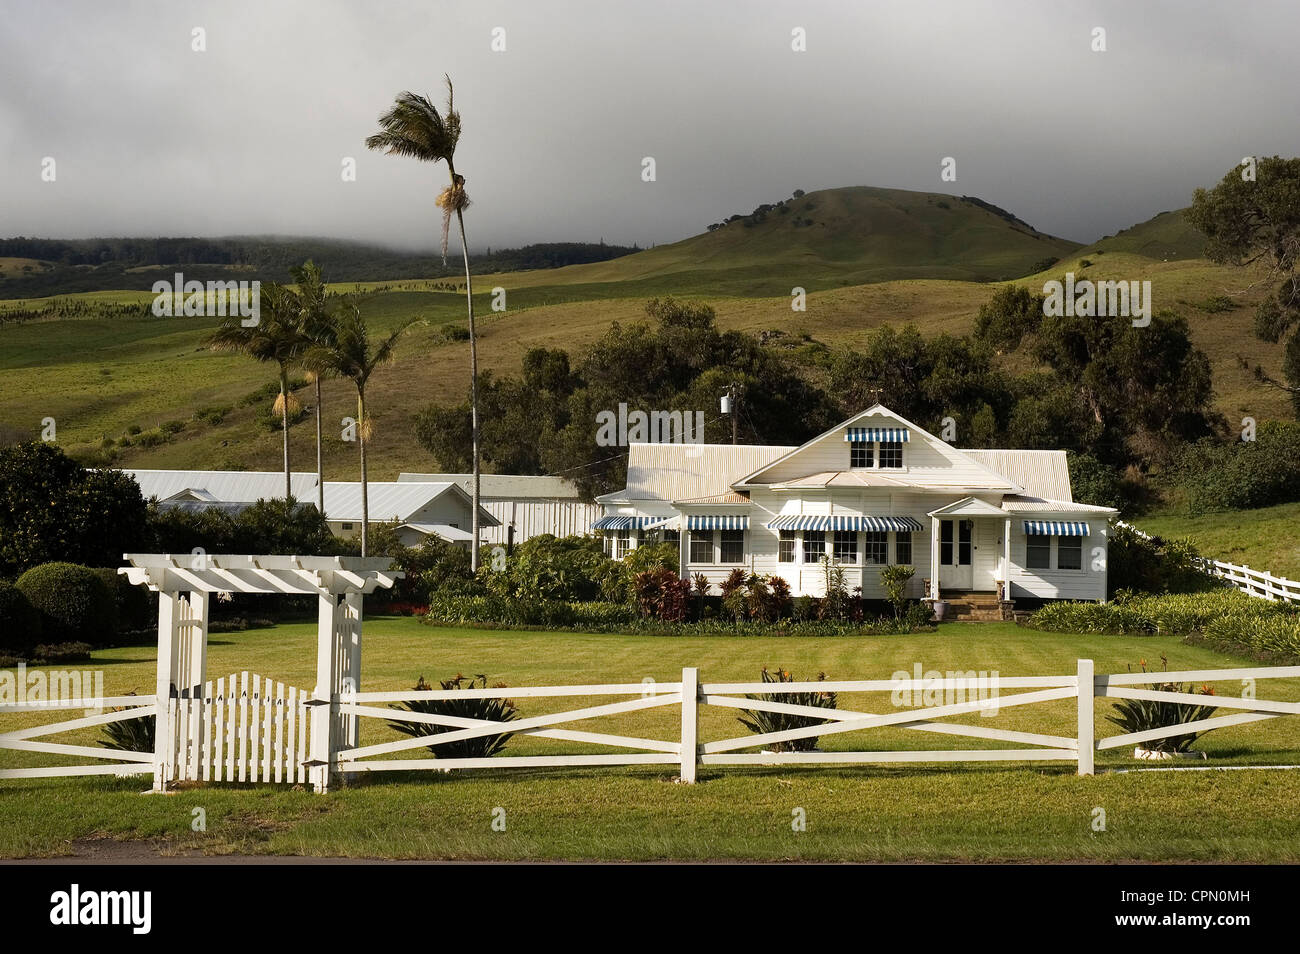 elk284 3125 hawaii hi waimea ranch haus stockfoto bild 48404737 alamy. Black Bedroom Furniture Sets. Home Design Ideas